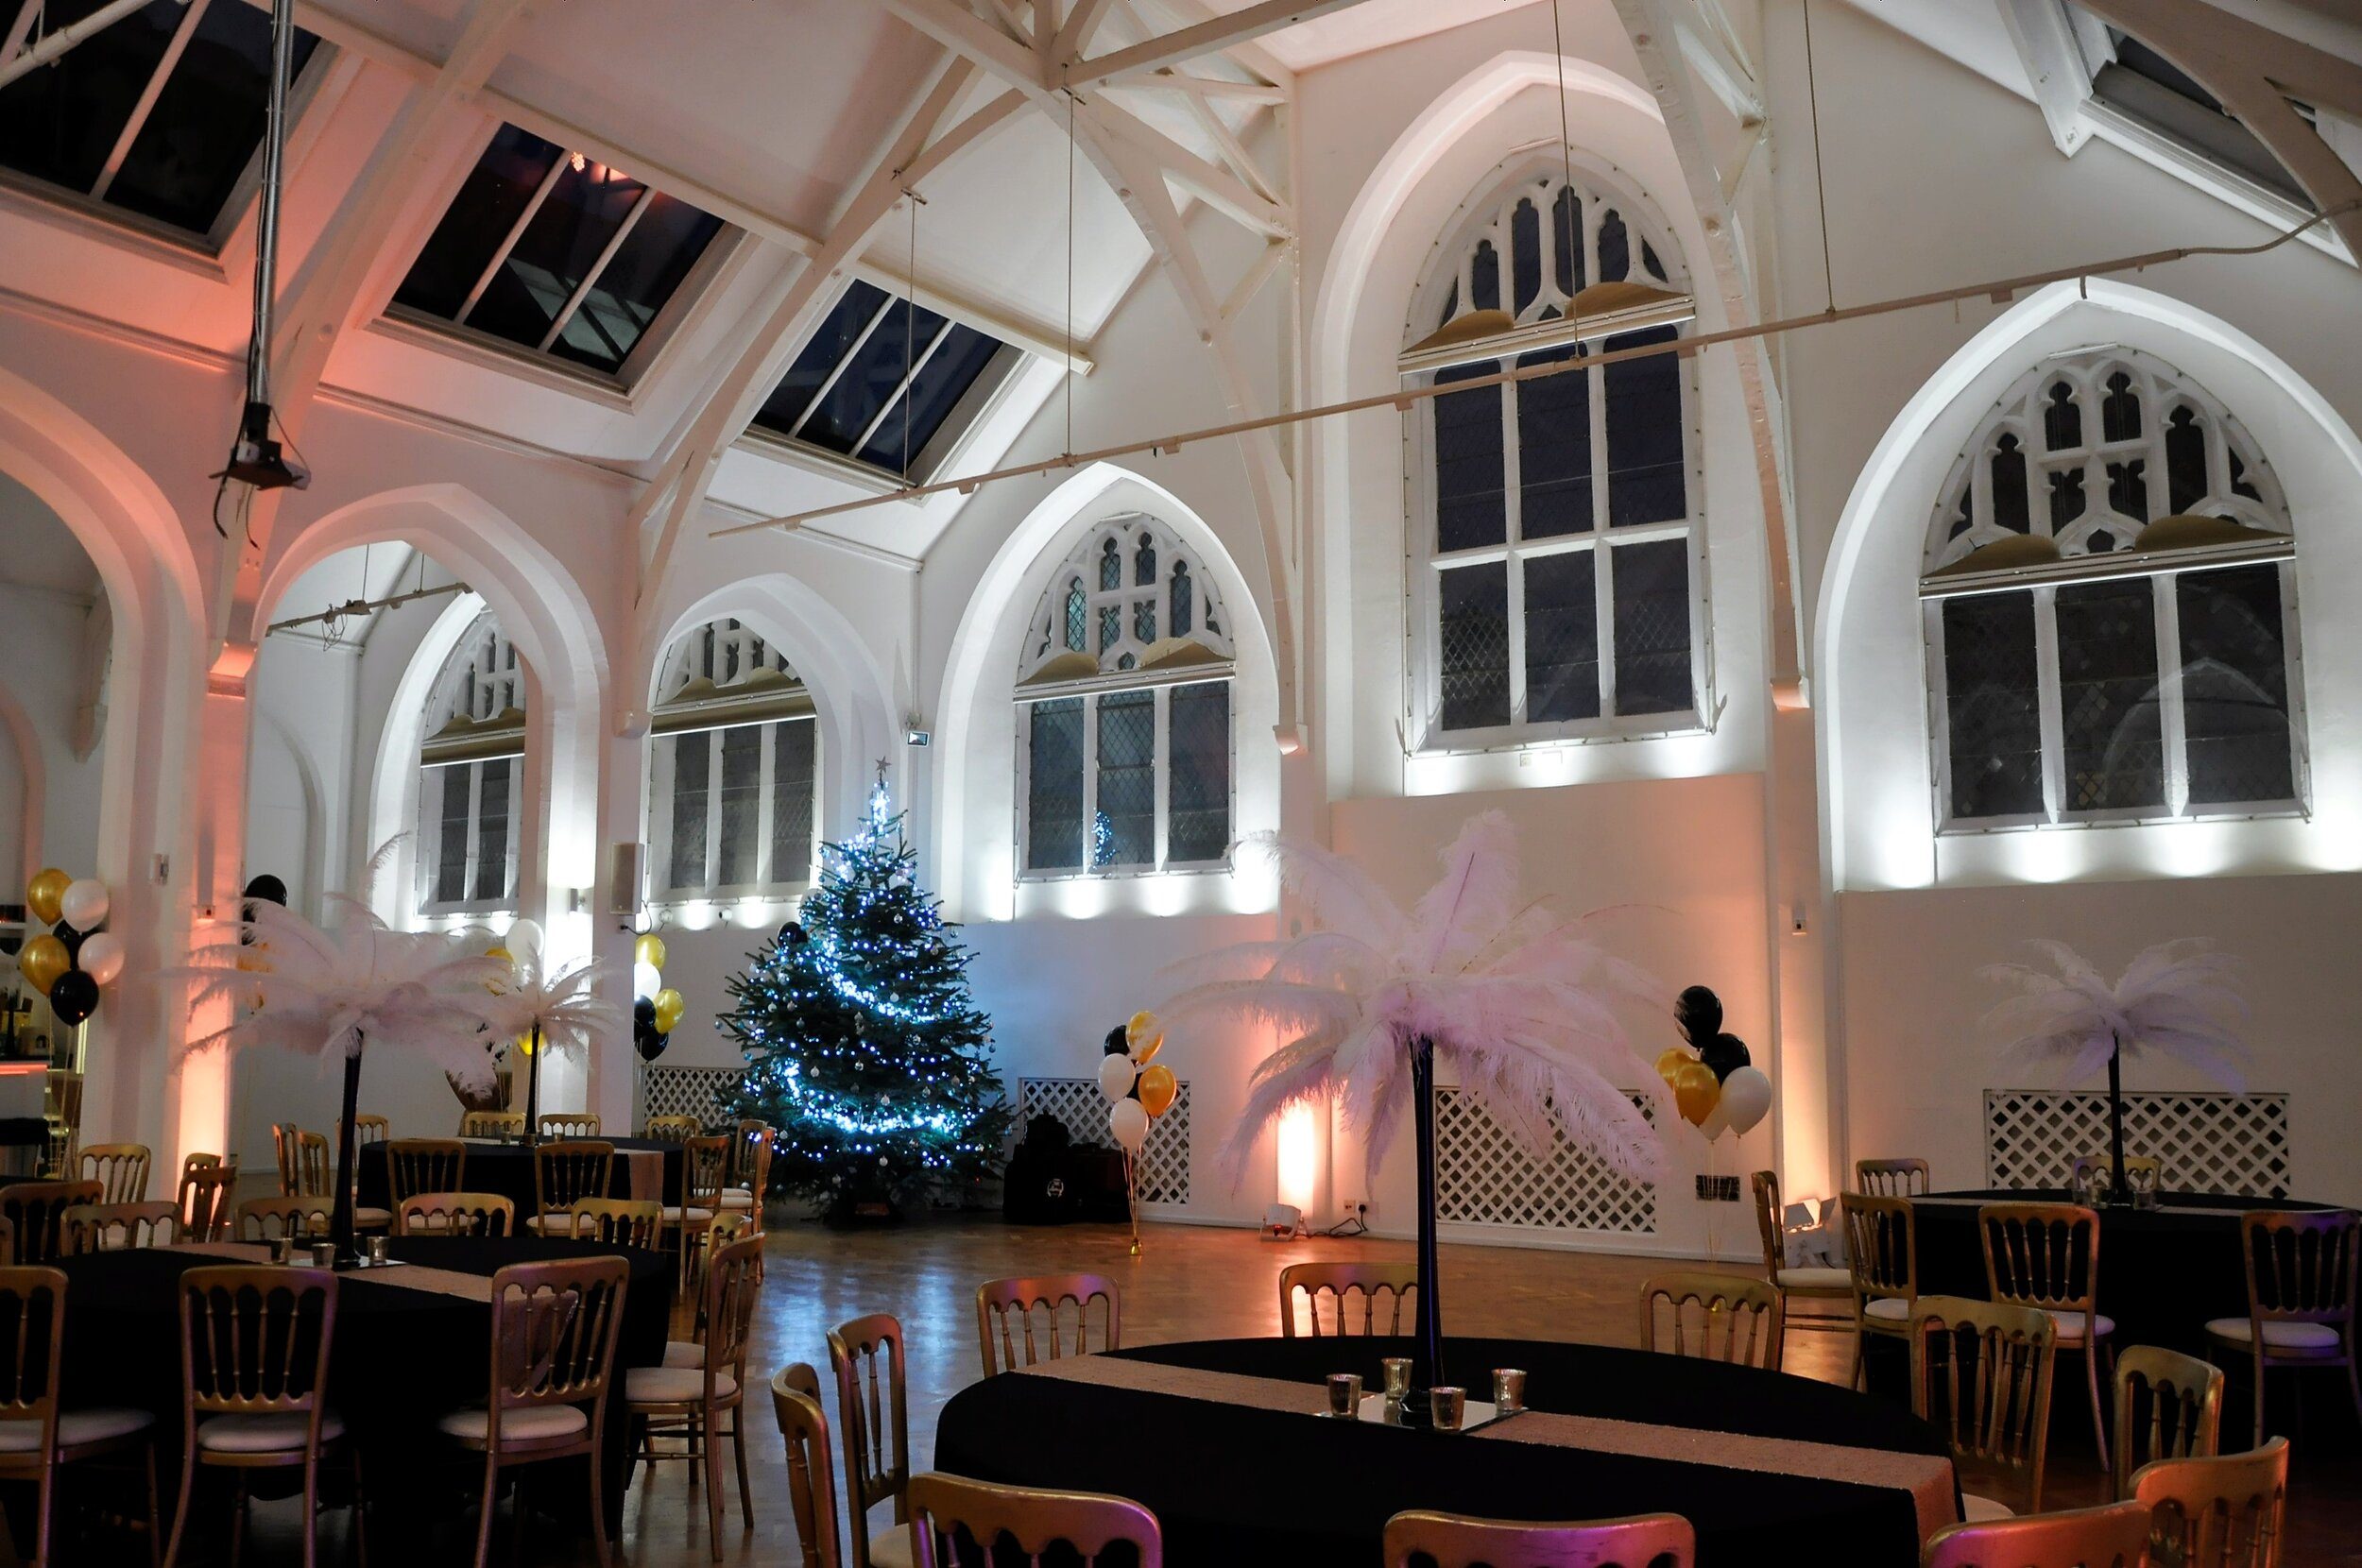 Book your Christmas Party today! - Limited dates available, contact our events team for more information.